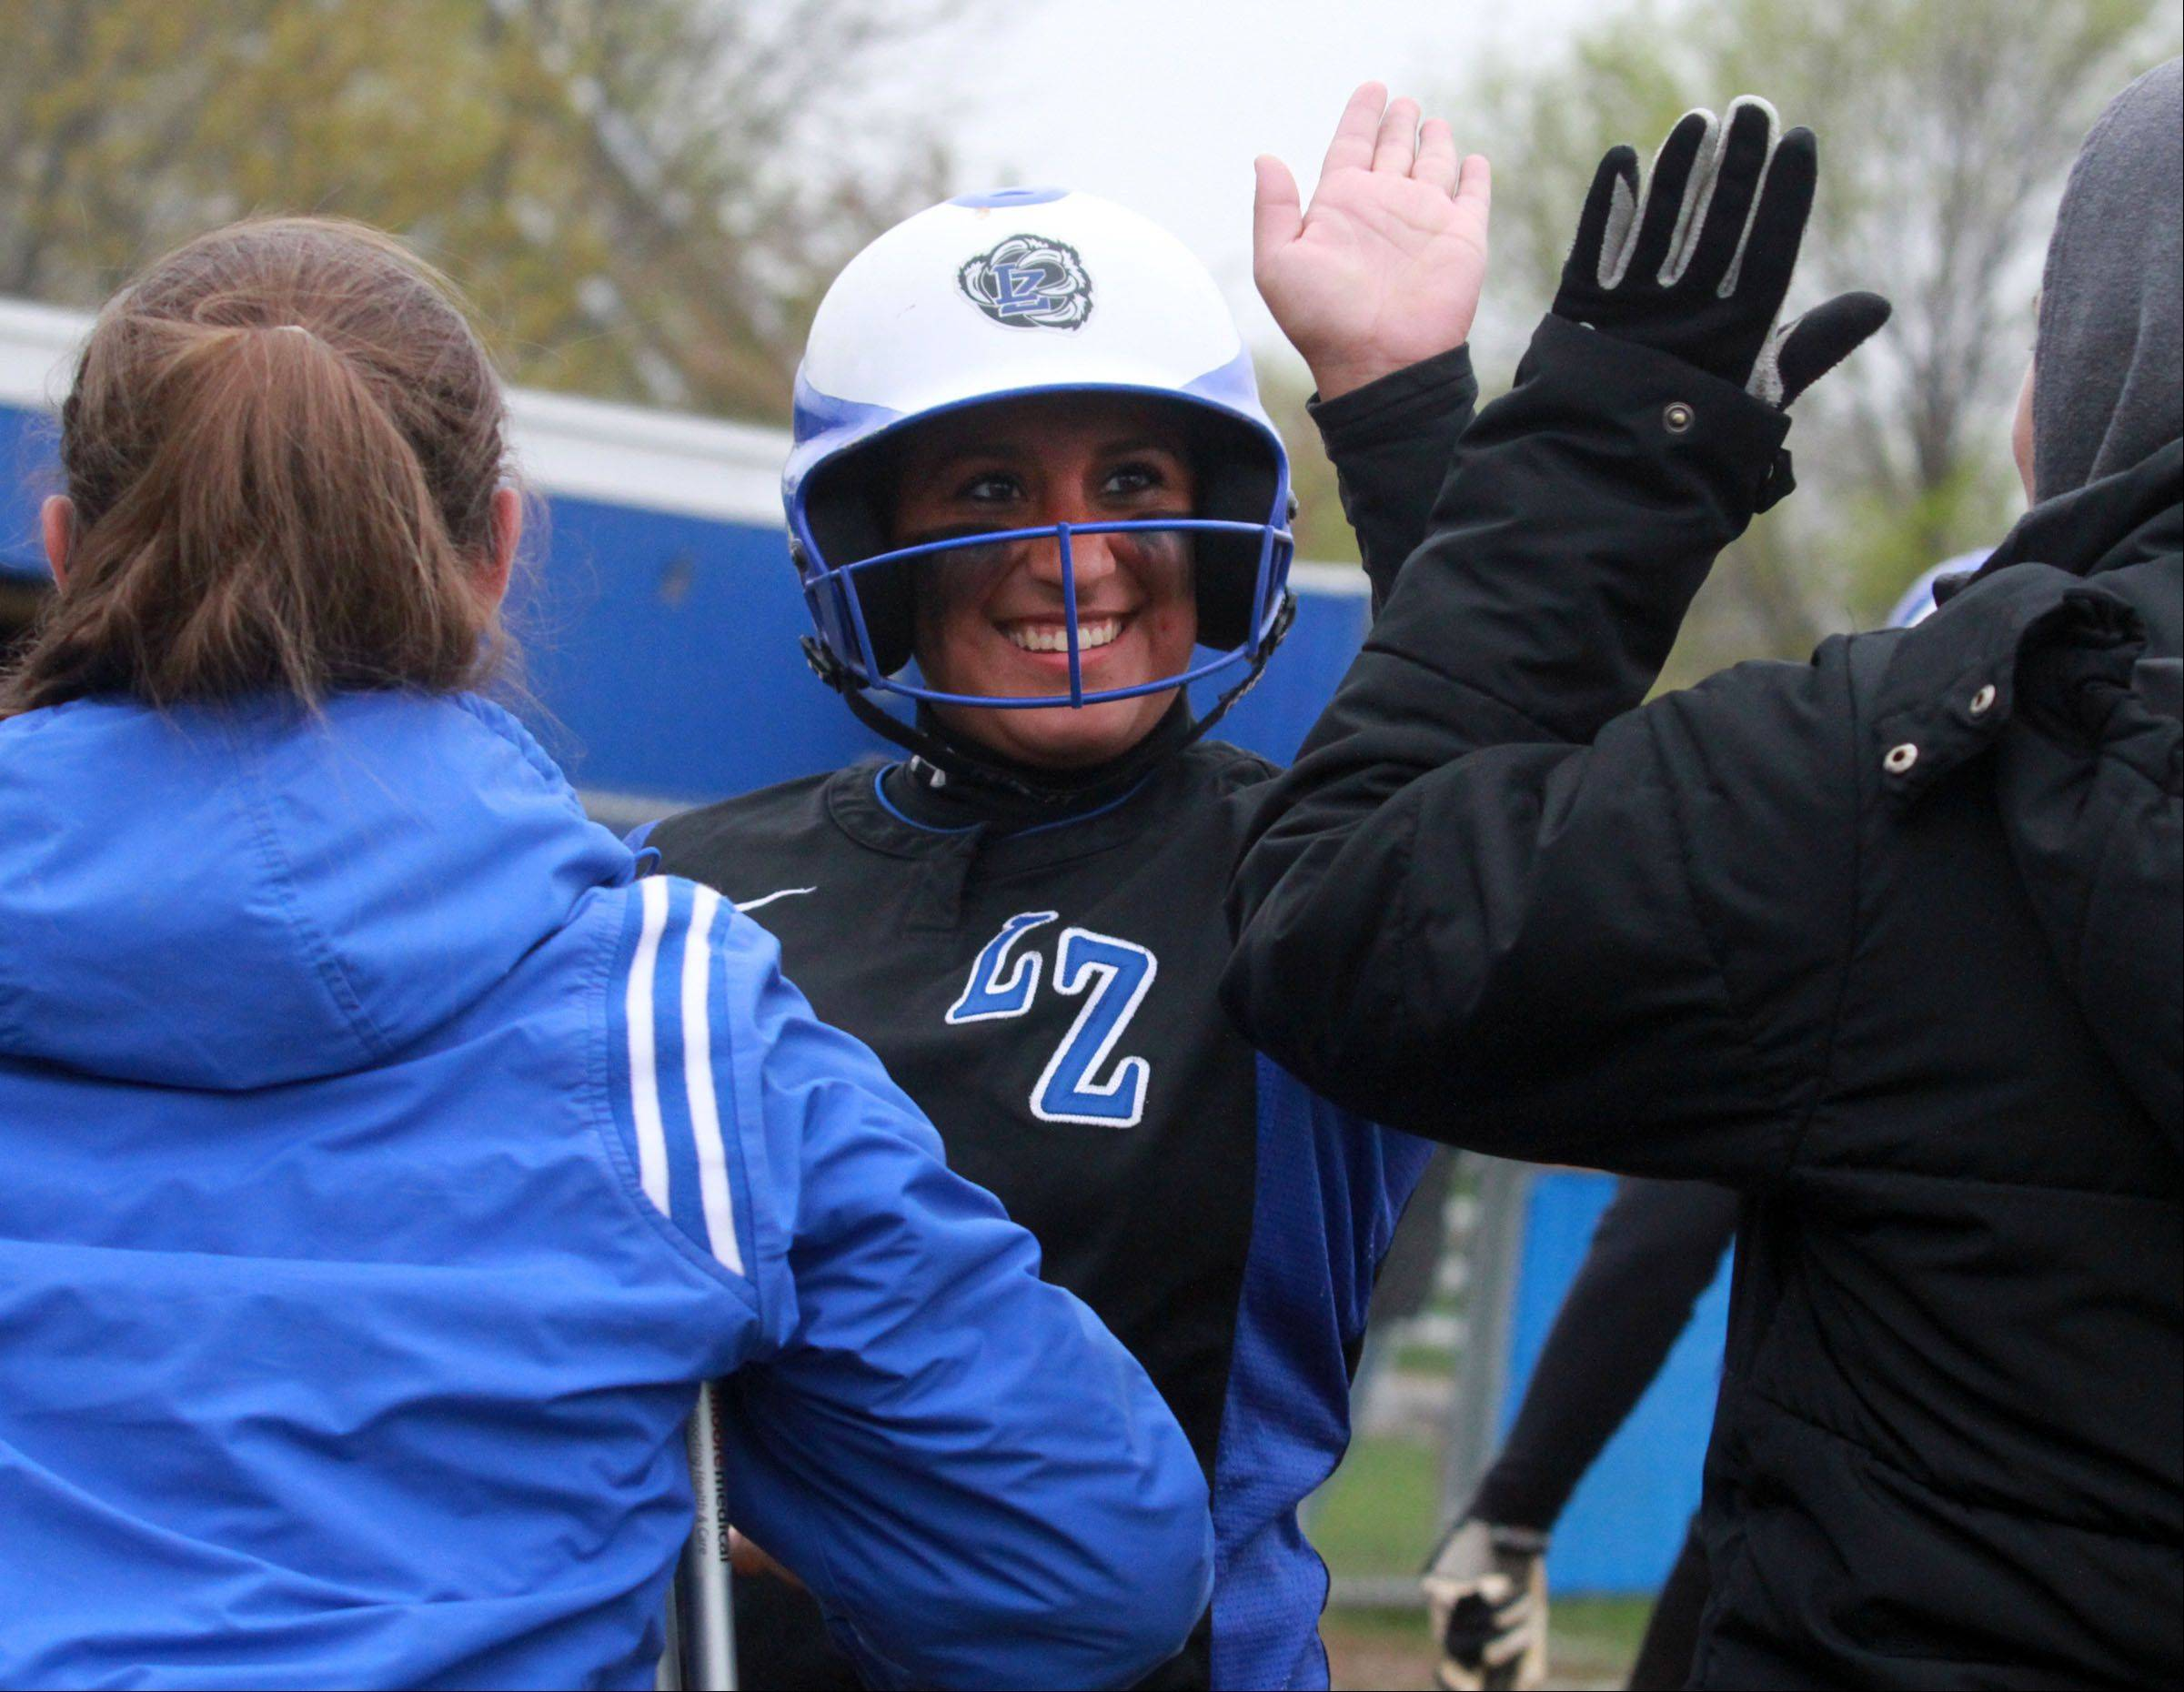 Lake Zurich's Carlee Parsons gets high-fives as she crosses home-plate after hitting a homer against Warren in Gurnee on Friday.